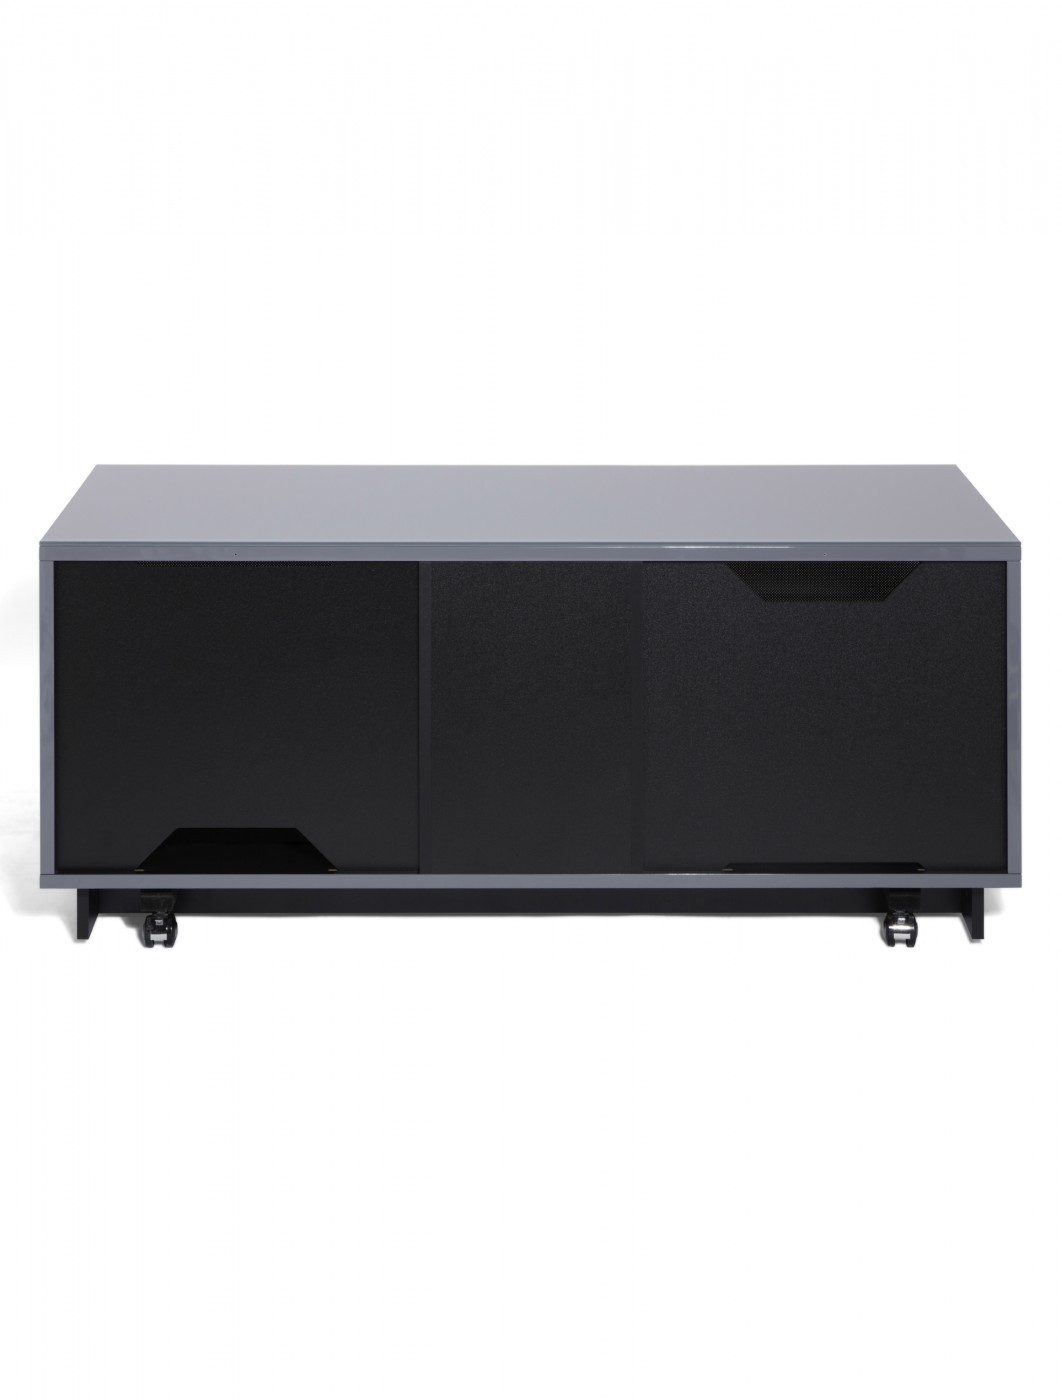 Alphason Element Modular 2500XL TV Stand EMT2500XL-GRY